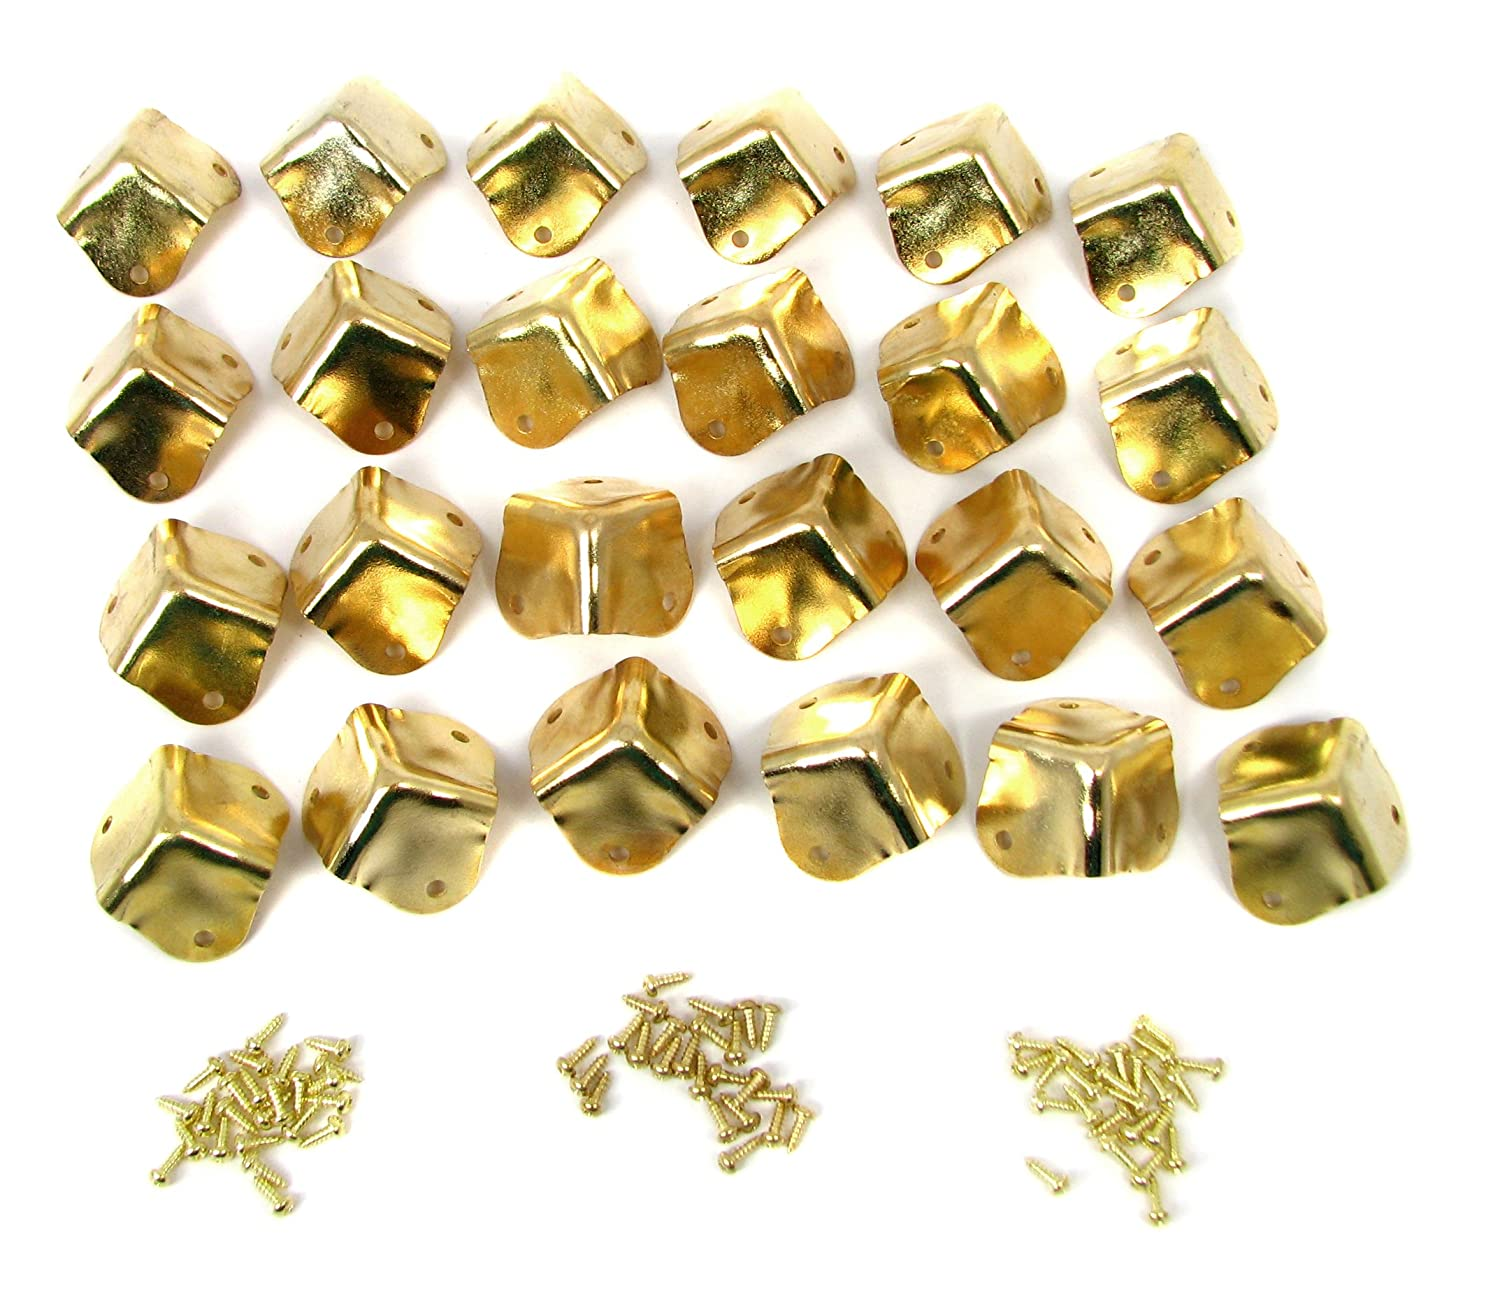 24pcs. Heavy Duty Square Brass-plated Box Corners with Mounting Screws C. B. Gitty Crafter Supply 4336977564